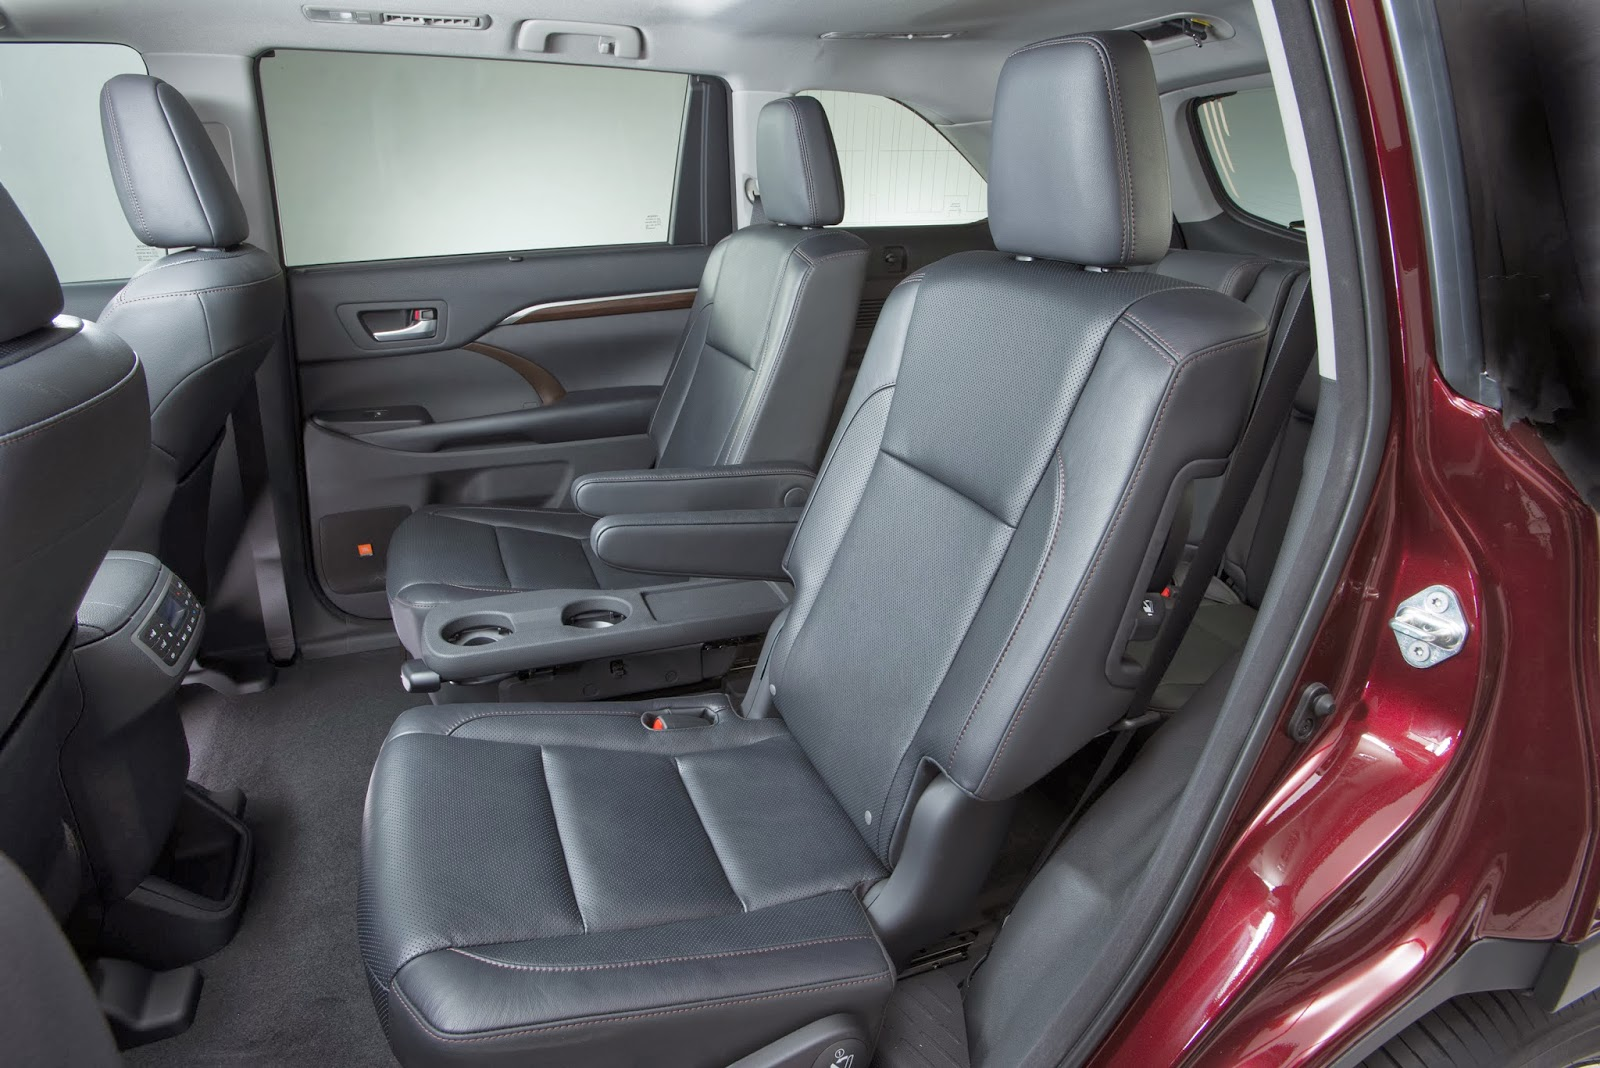 Toyota Highlander Captains Chairs 2015 Suvs With 2nd Row Captains Chairs Html Autos Post